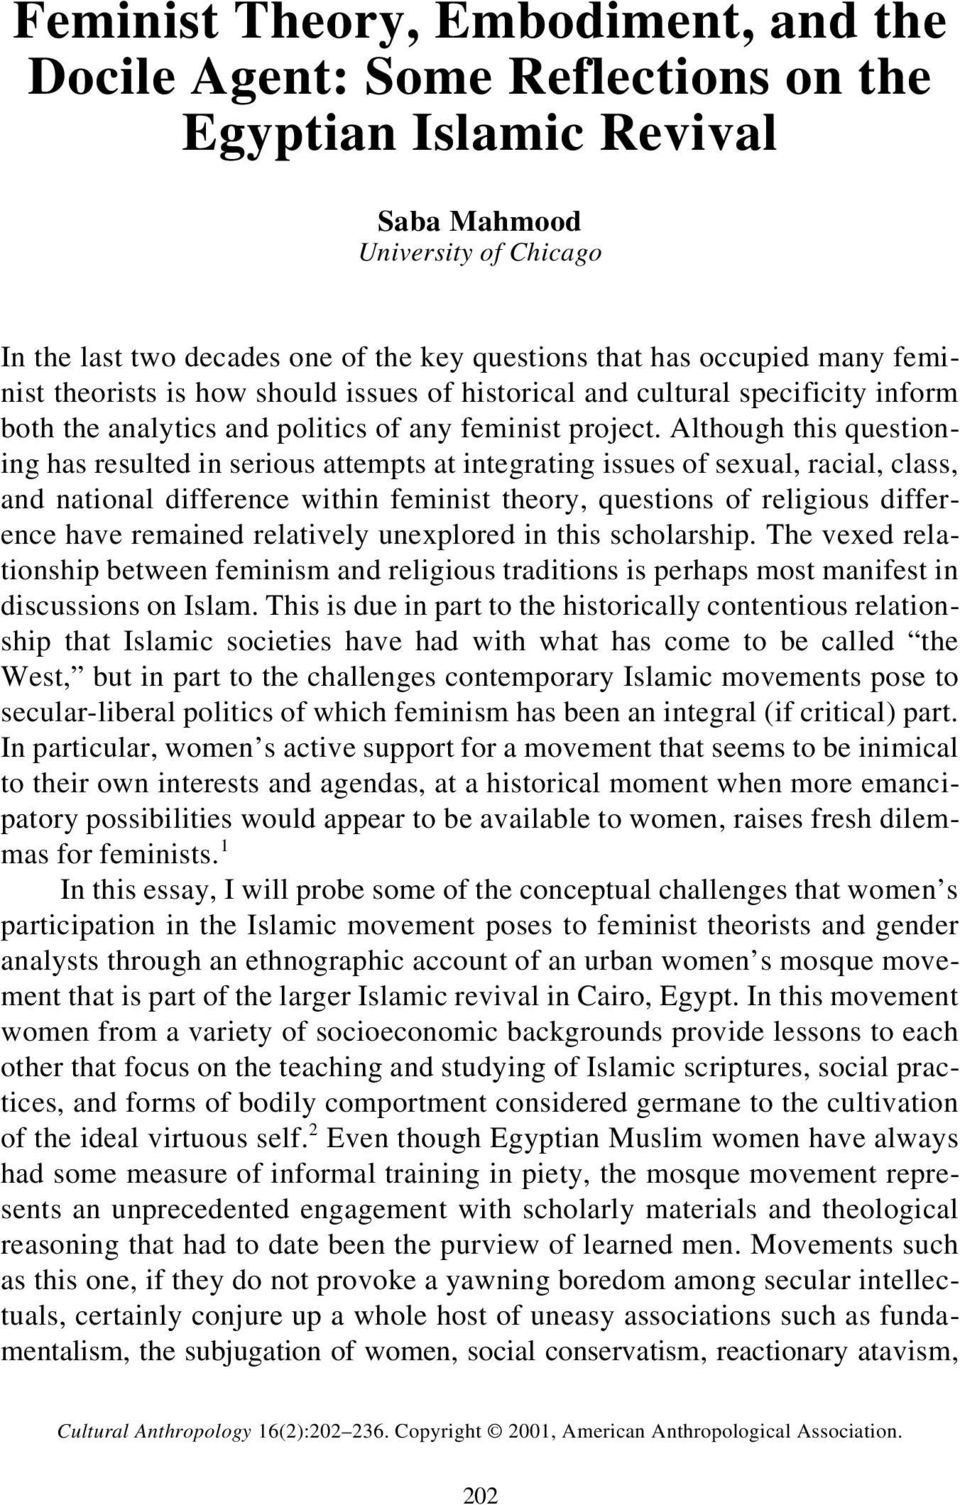 Although this questioning has resulted in serious attempts at integrating issues of sexual, racial, class, and national difference within feminist theory, questions of religious difference have